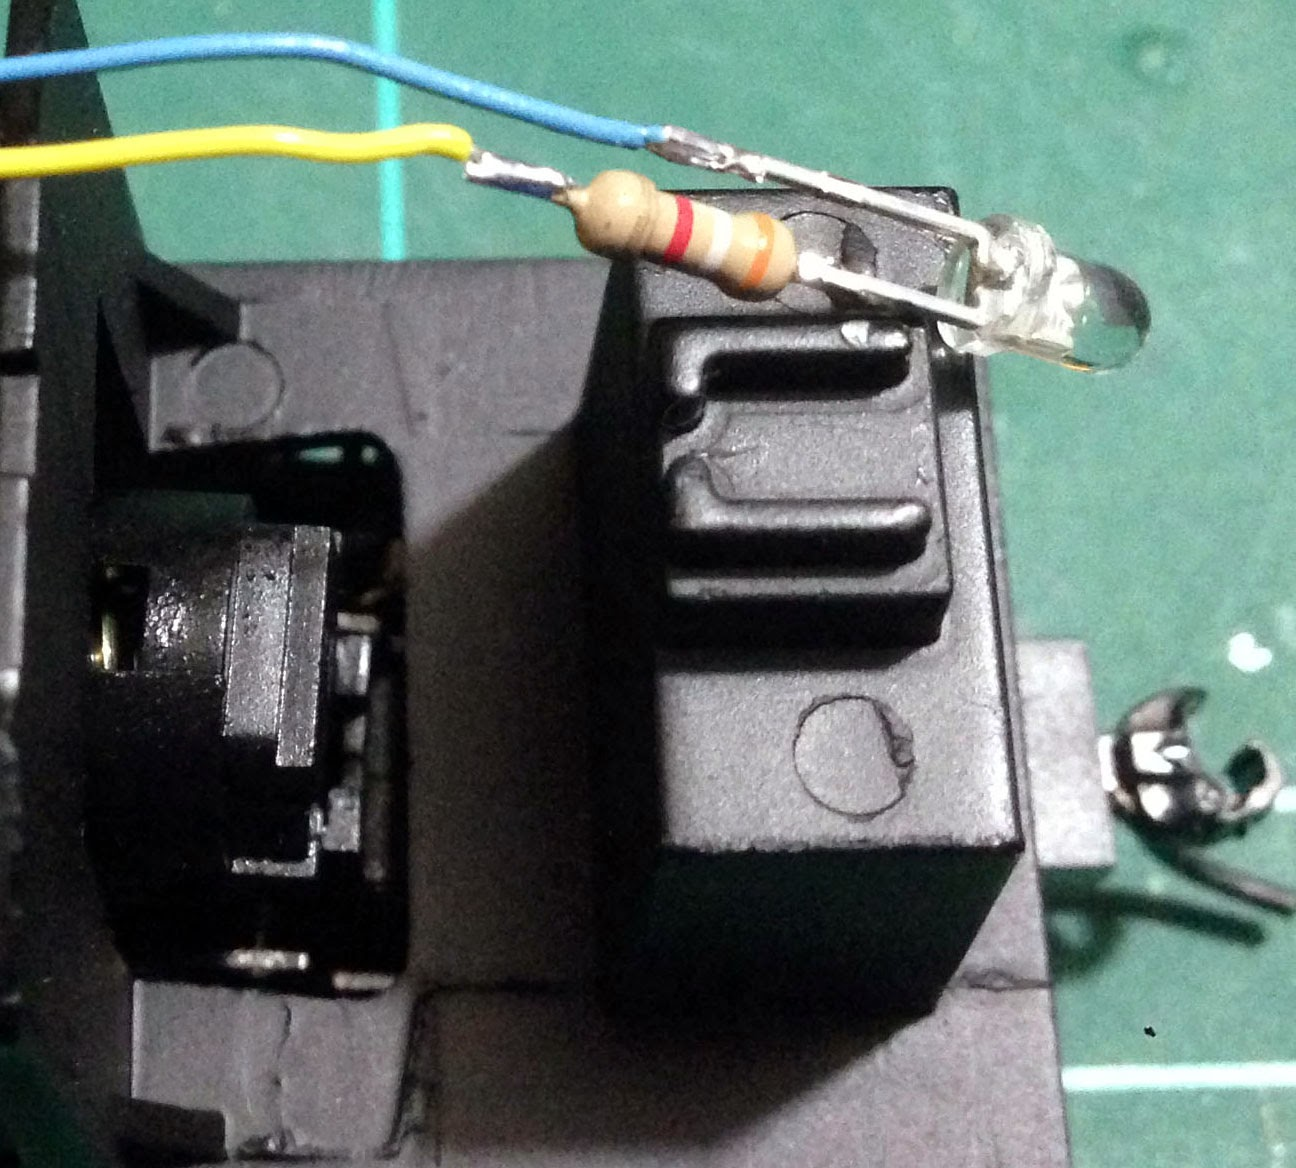 Coopers Ridge Trainorama Gm Class Dcc Modification With Sound Light Wiring Figure 6 Rear Led